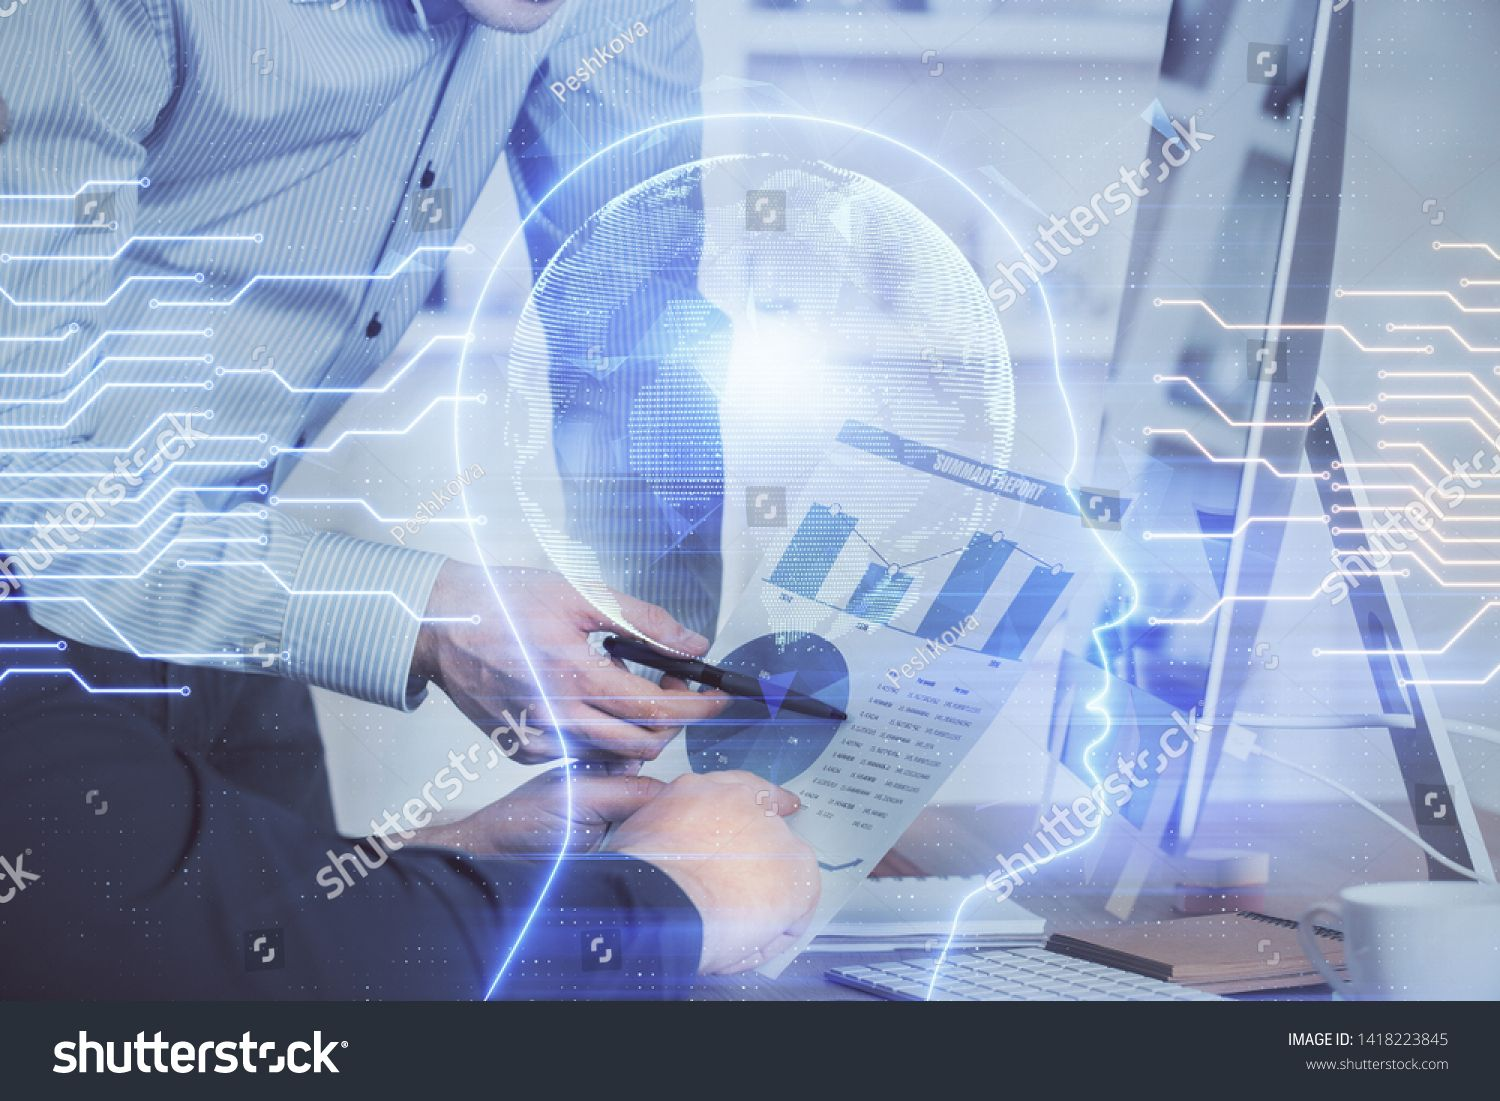 Man with computer background with brain theme hologram Concept of brainstorm Double exposure